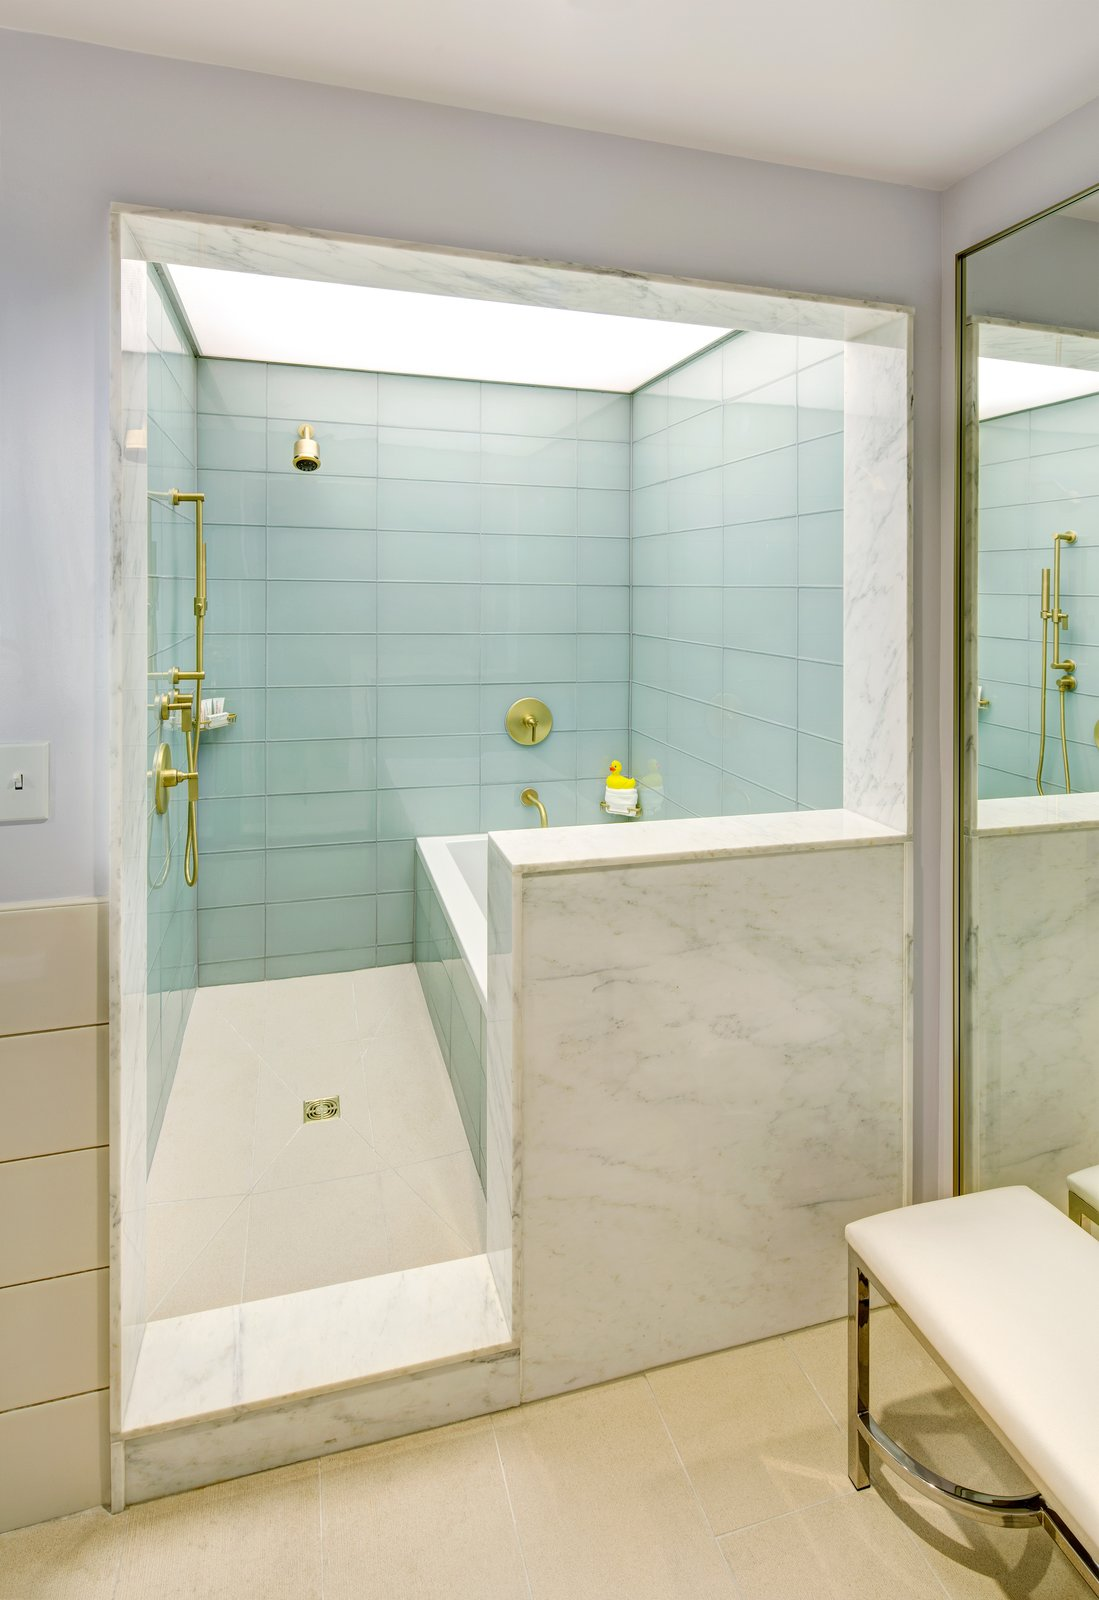 Photo 3 of 10 in 10 Best Modern Showers to Inspire Your Bathroom ...